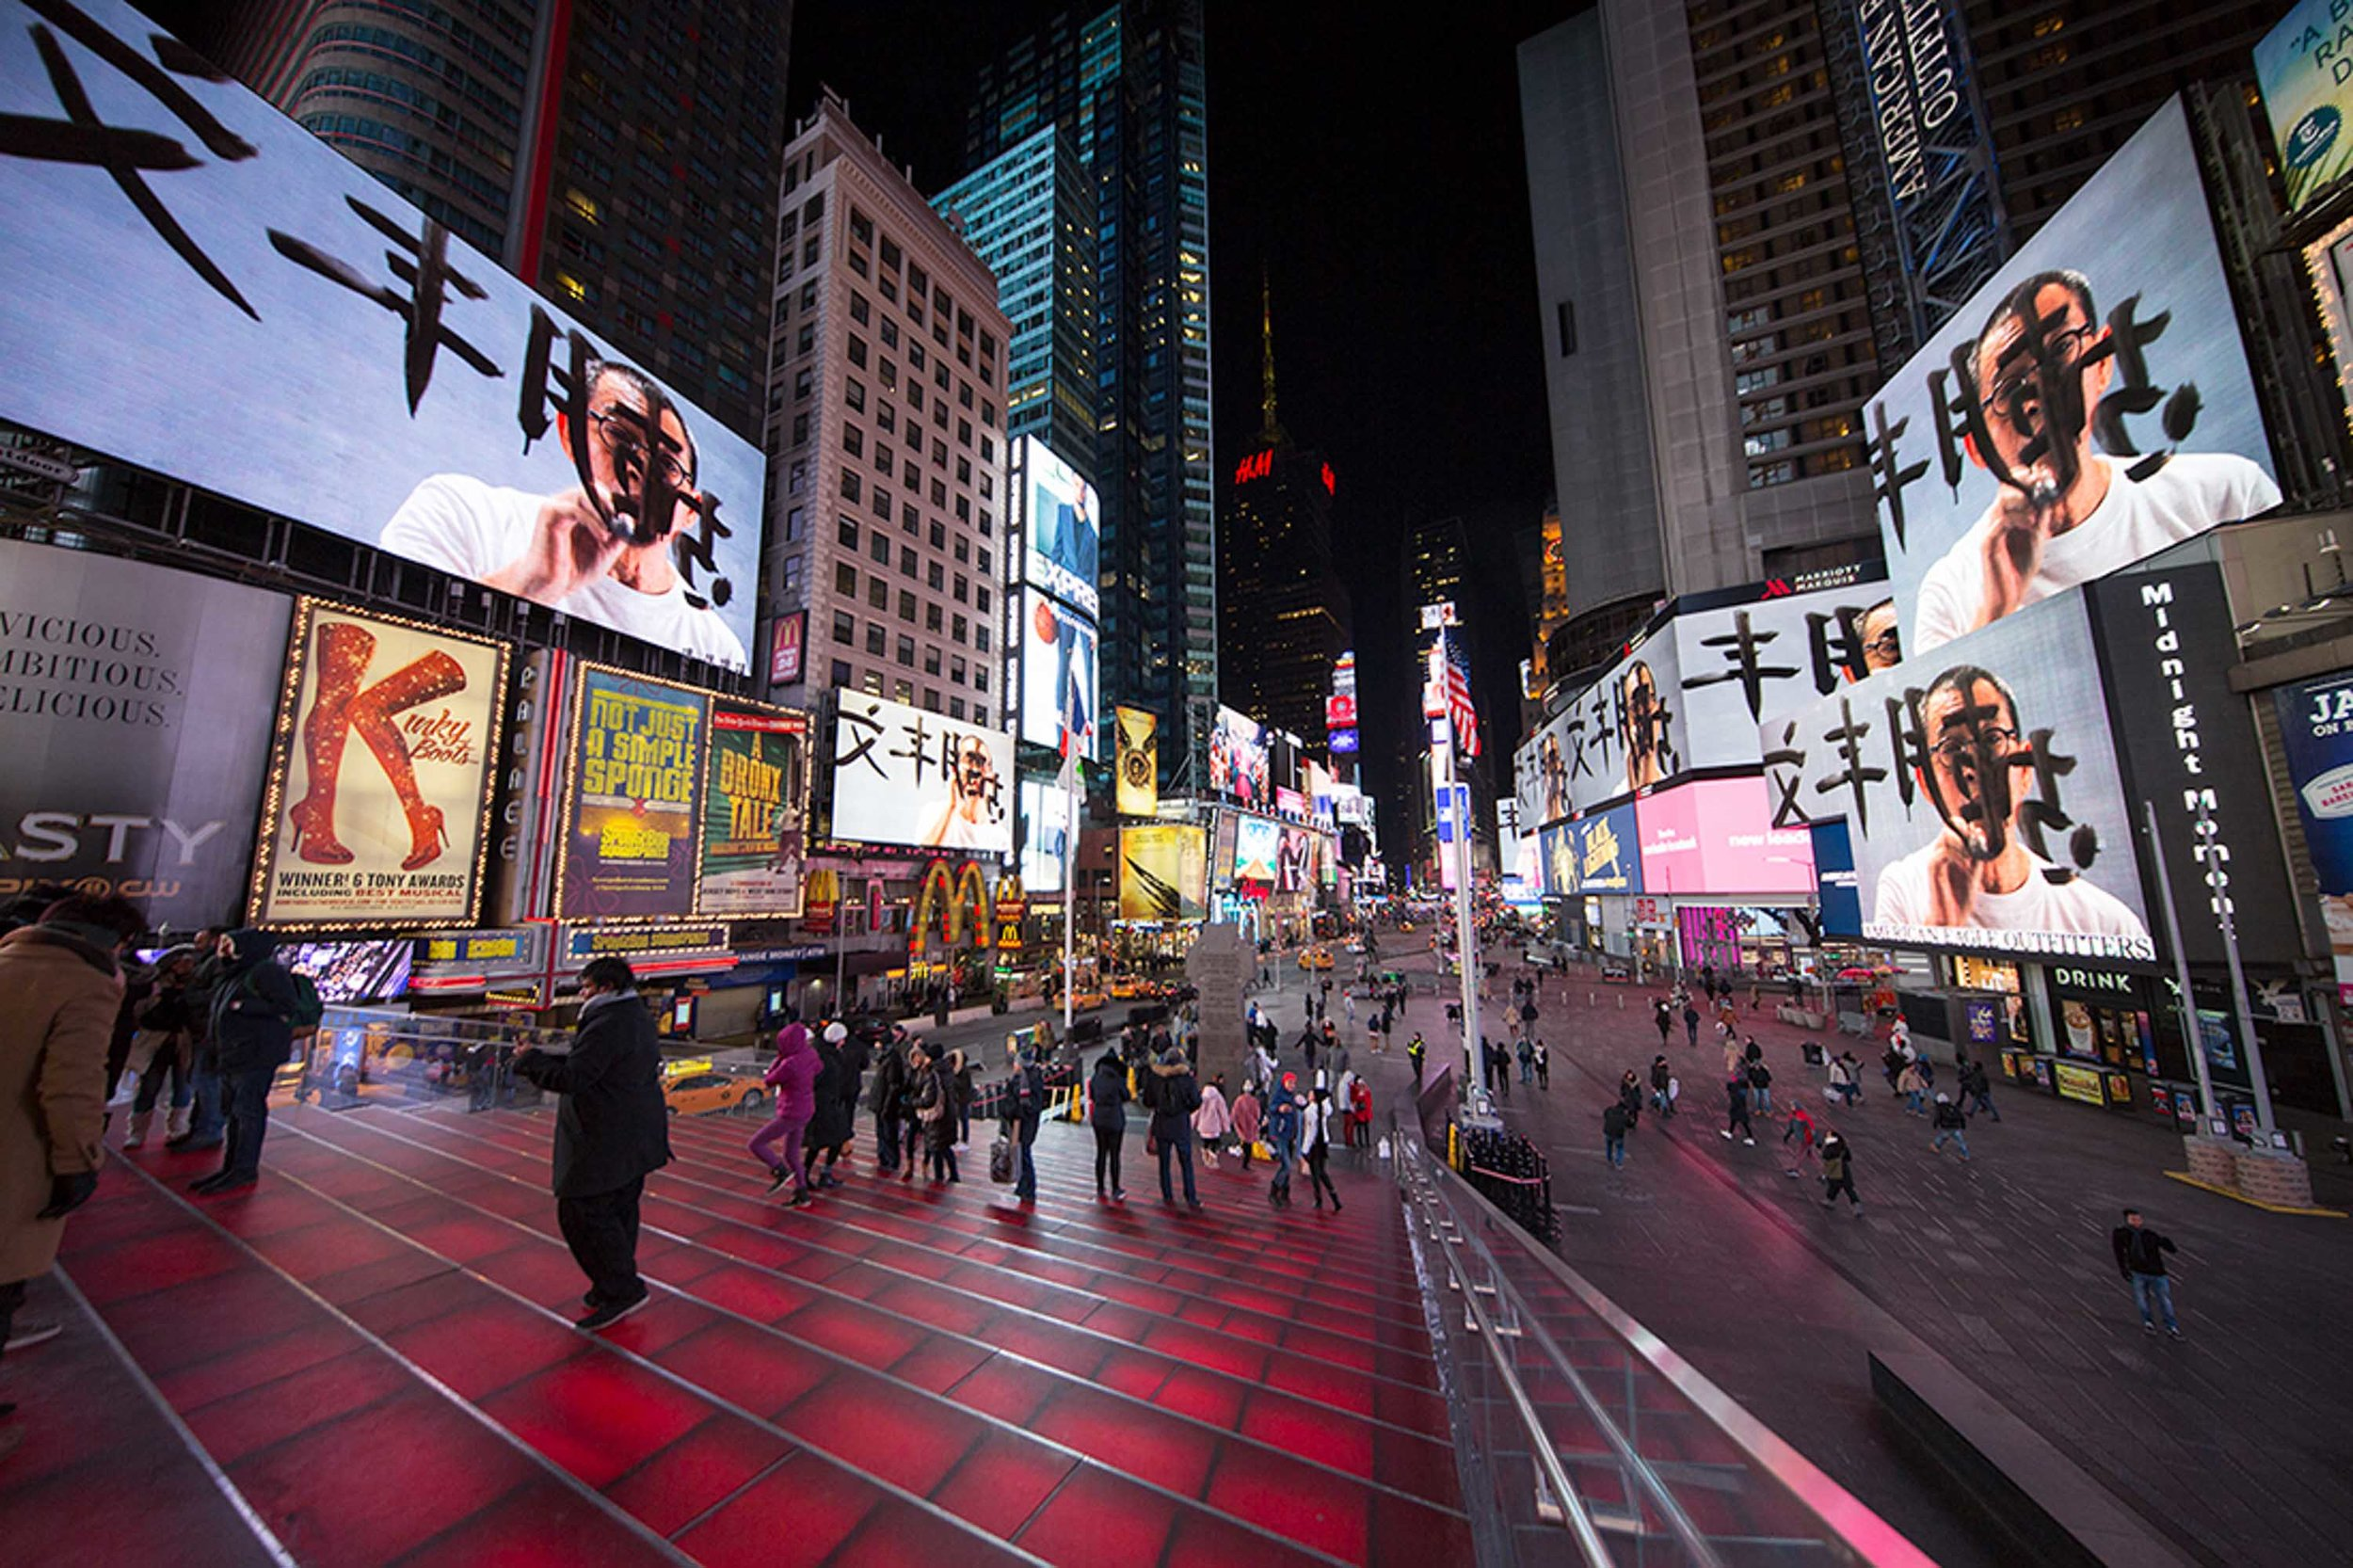 Installation view of 'Writing in the Rain' featured in Times Square, NY for Midnight Moment, January 1 - 31, 2018. Image courtesy of the artist and Tyler Rollins Fine Art.